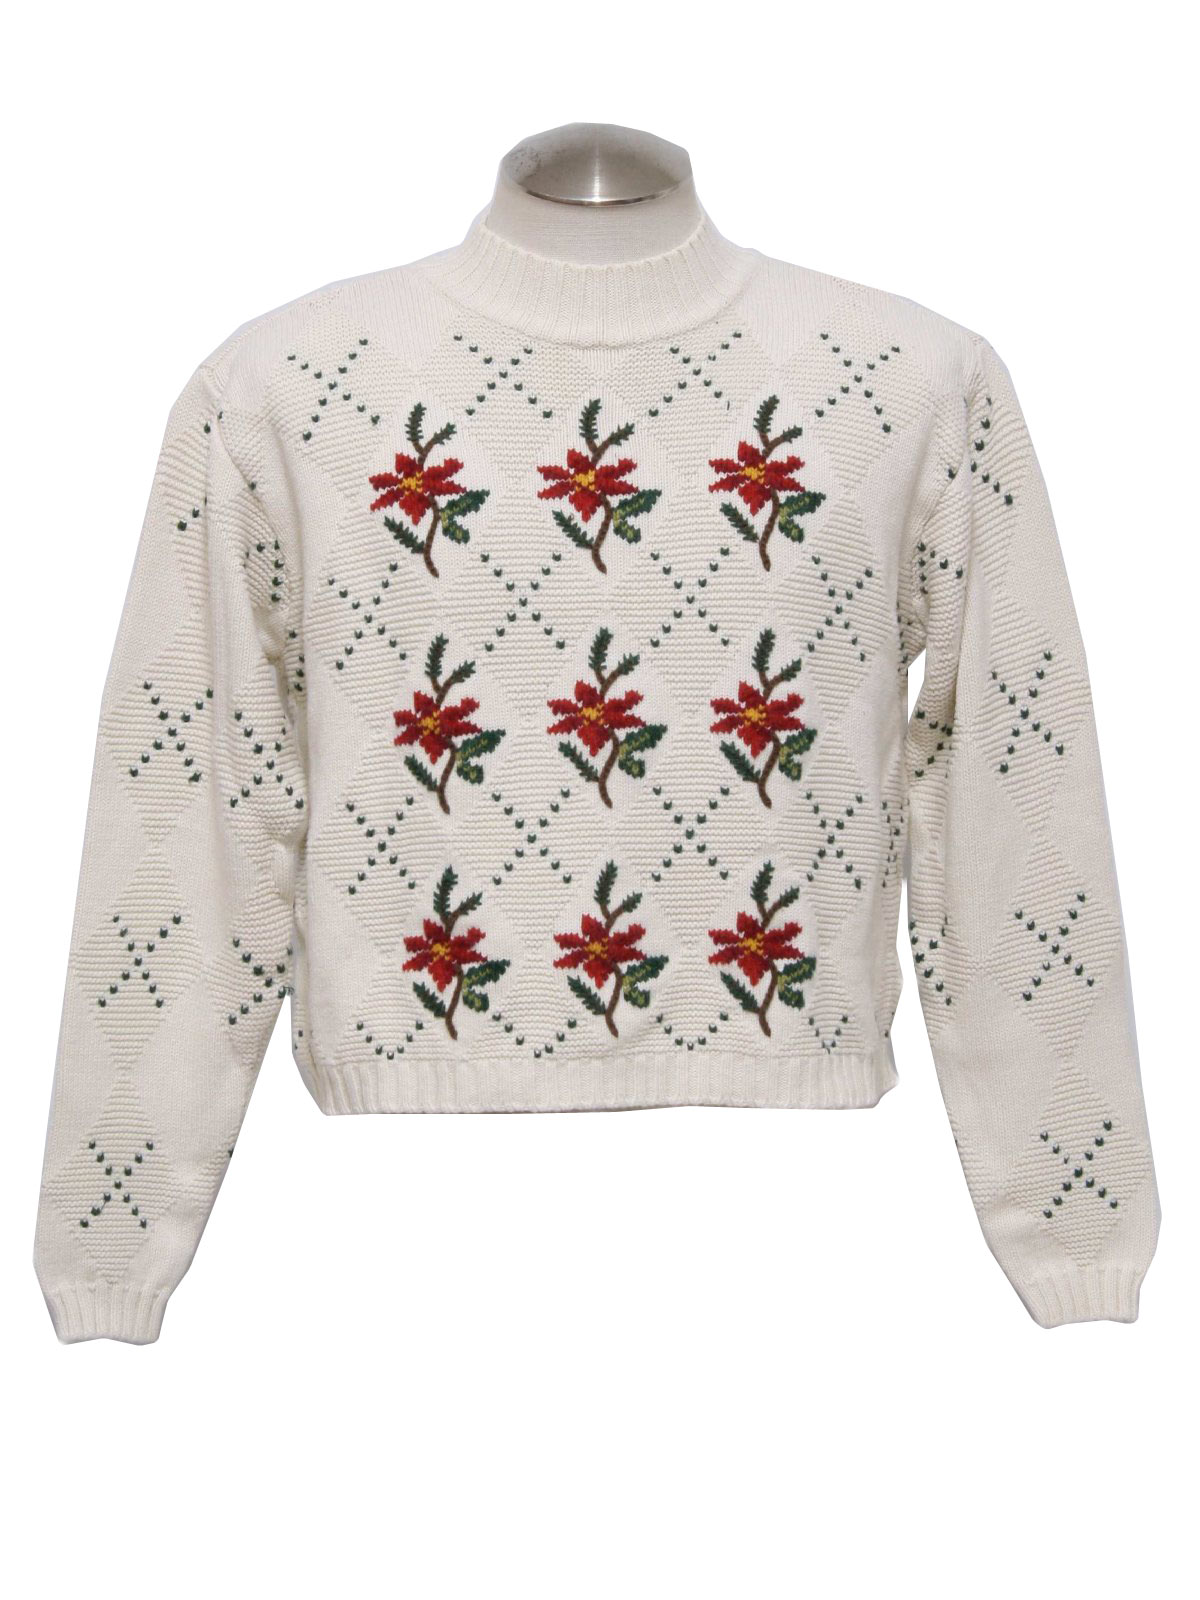 Womens ugly christmas sweater missing label womens for Over the top ugly christmas sweaters